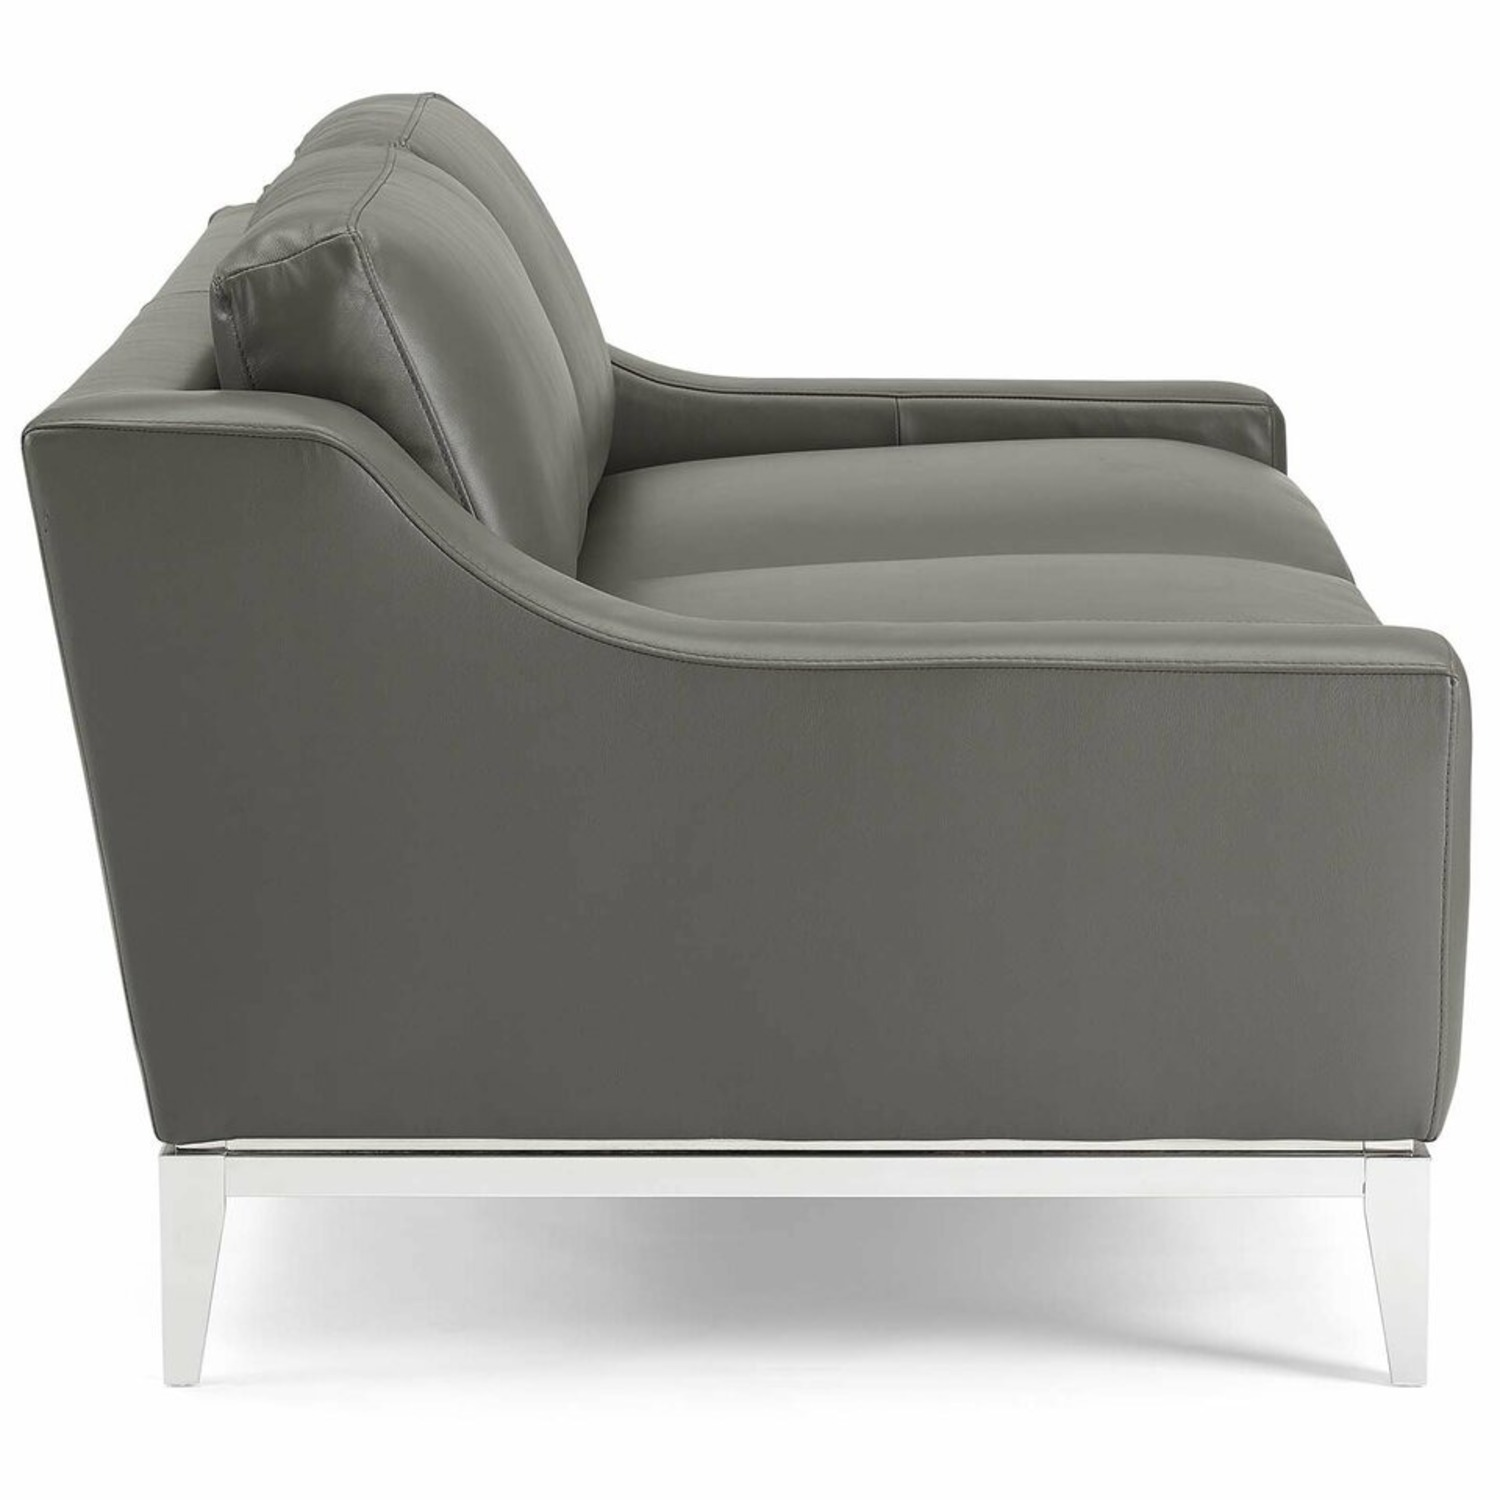 Loveseat In Gray Leather W/ Stainless Steel Base - image-1